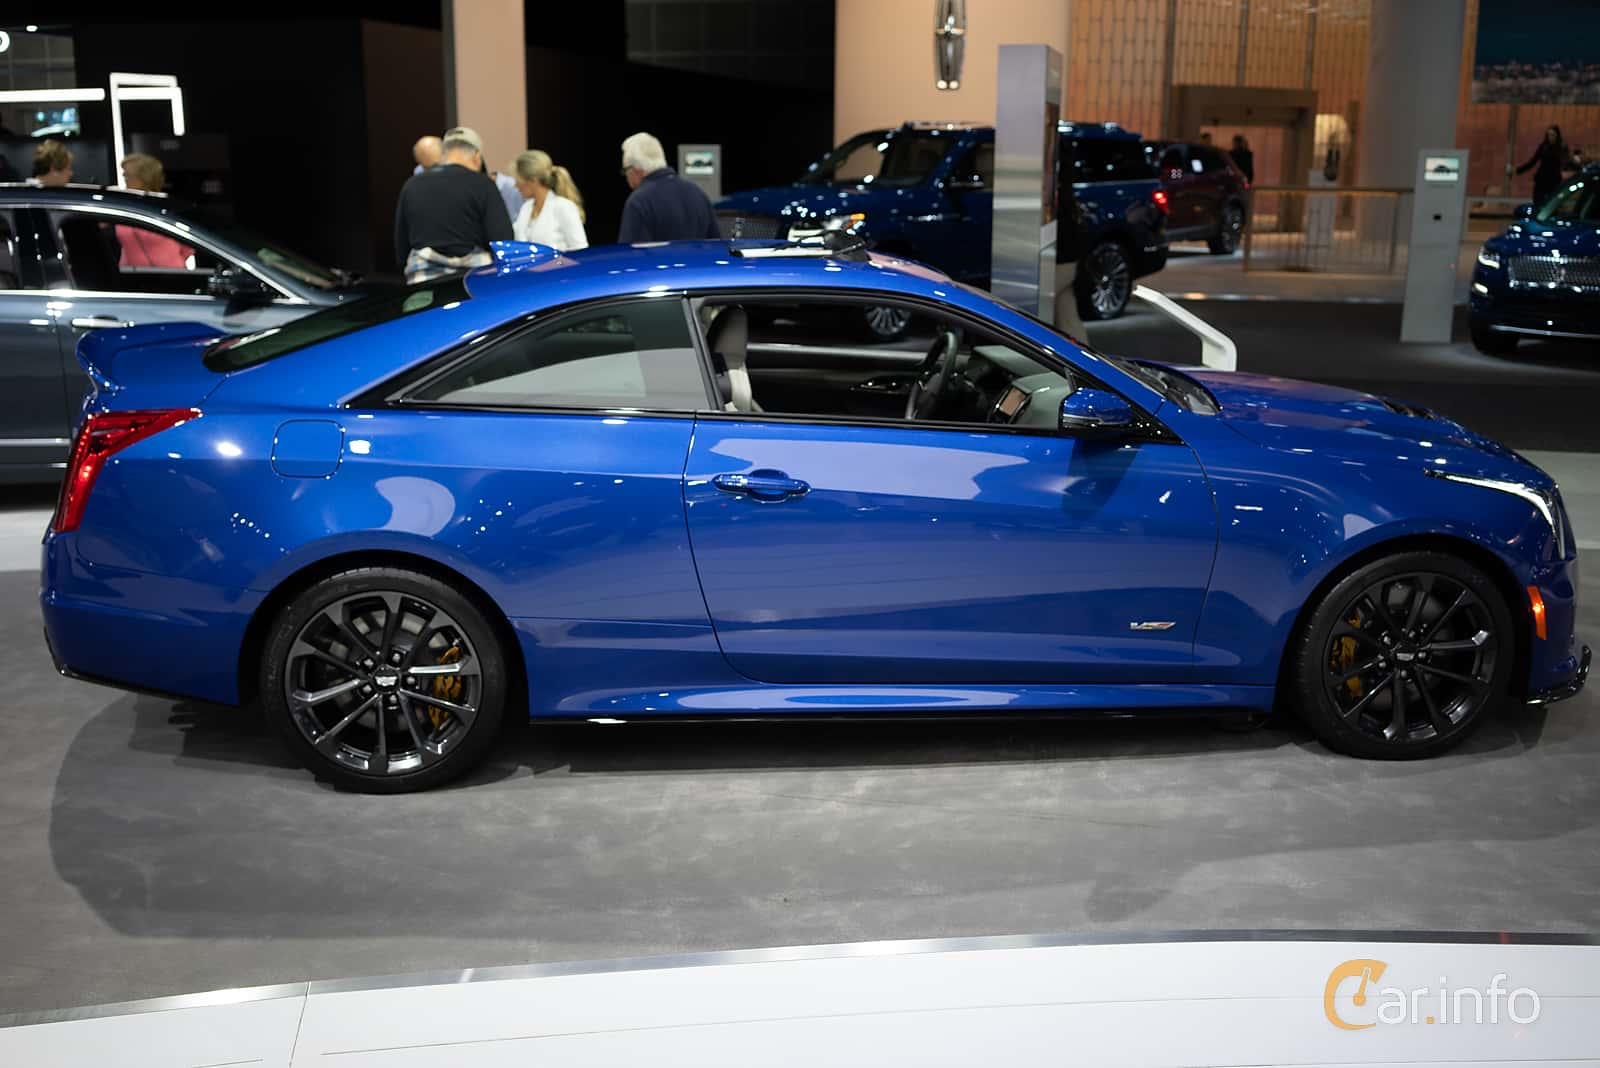 Cadillac ATS-V Coupé 3.6 V6 470hp, 2019 at LA Motor Show 2018